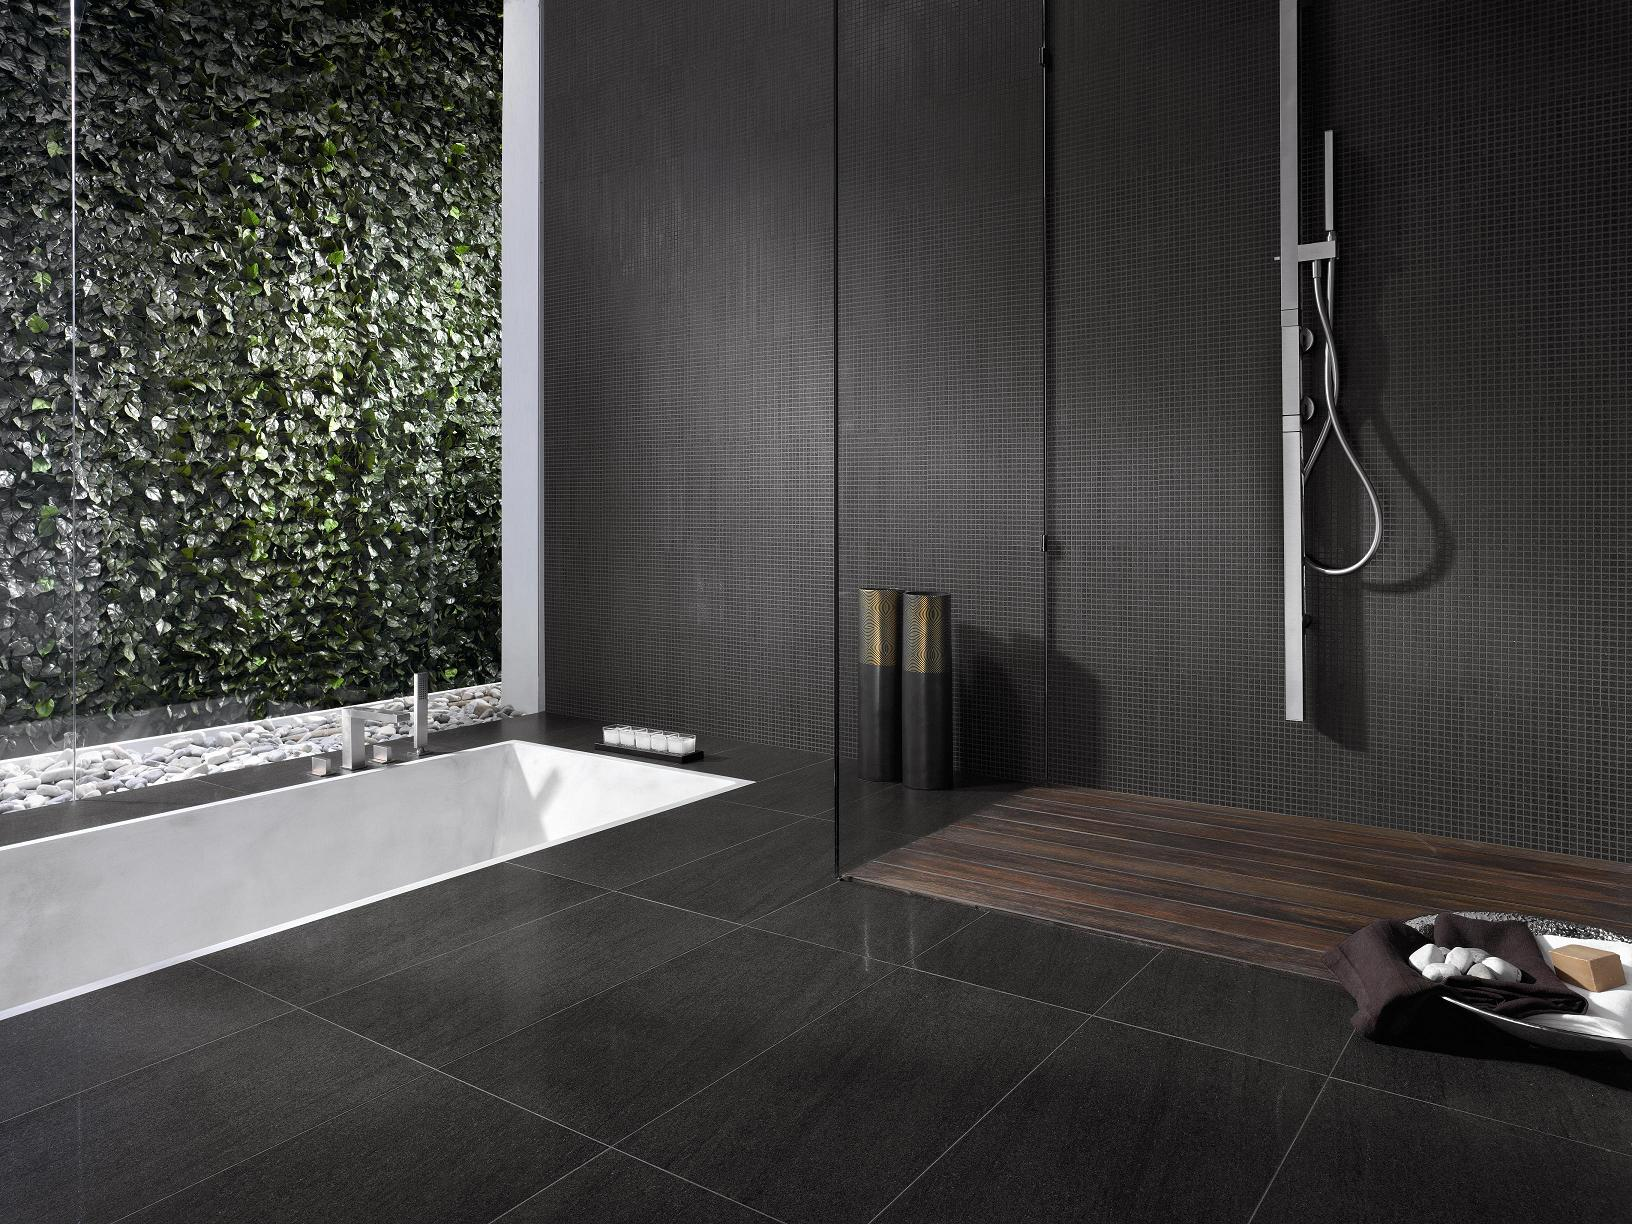 pivotech minimalist bathroom. Interior Design Ideas. Home Design Ideas